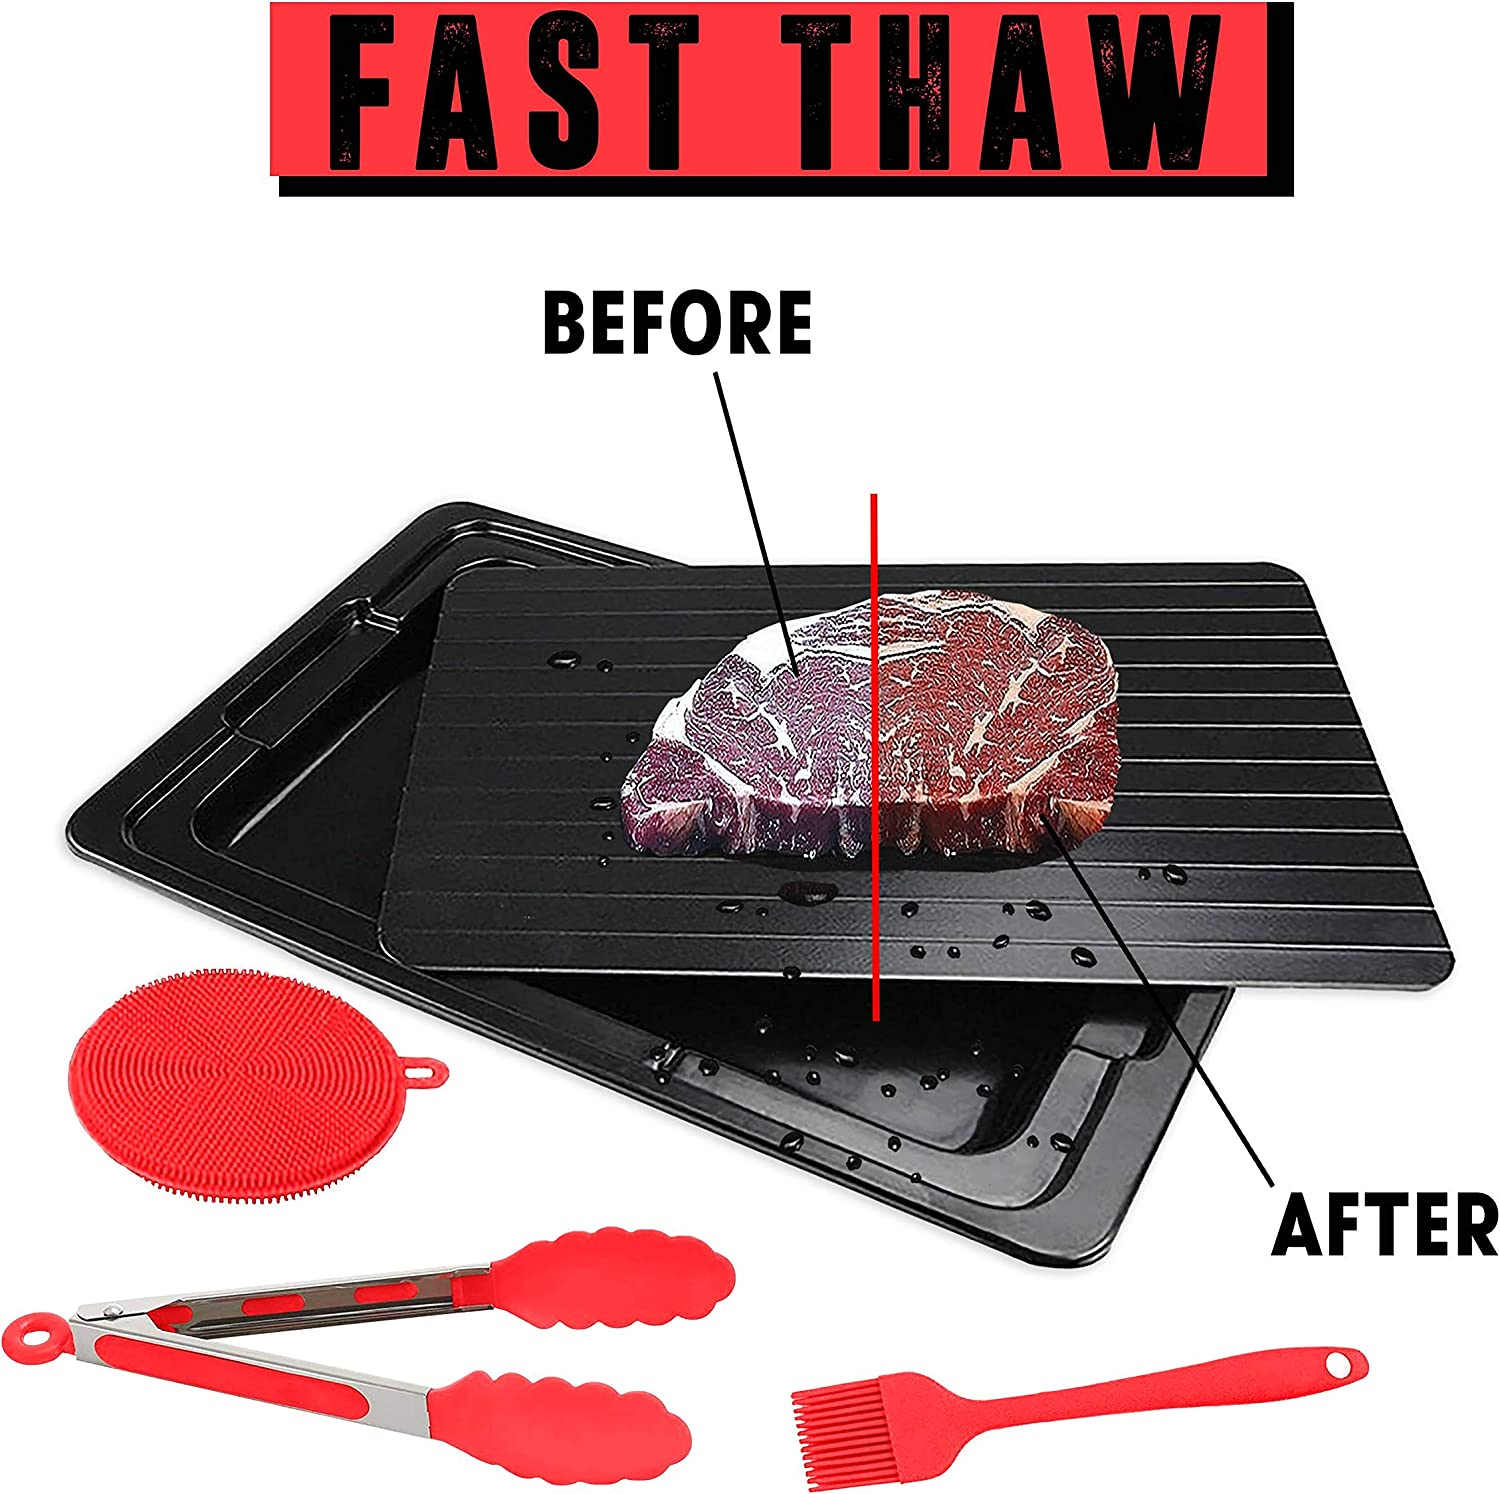 Defrosting Tray For Rapid Thawing Frozen Food - FROST-NO Defrost Meat Thaw Tray With Silicone Sponge And Brush - Defroster Plate with Plastic Drip Tray